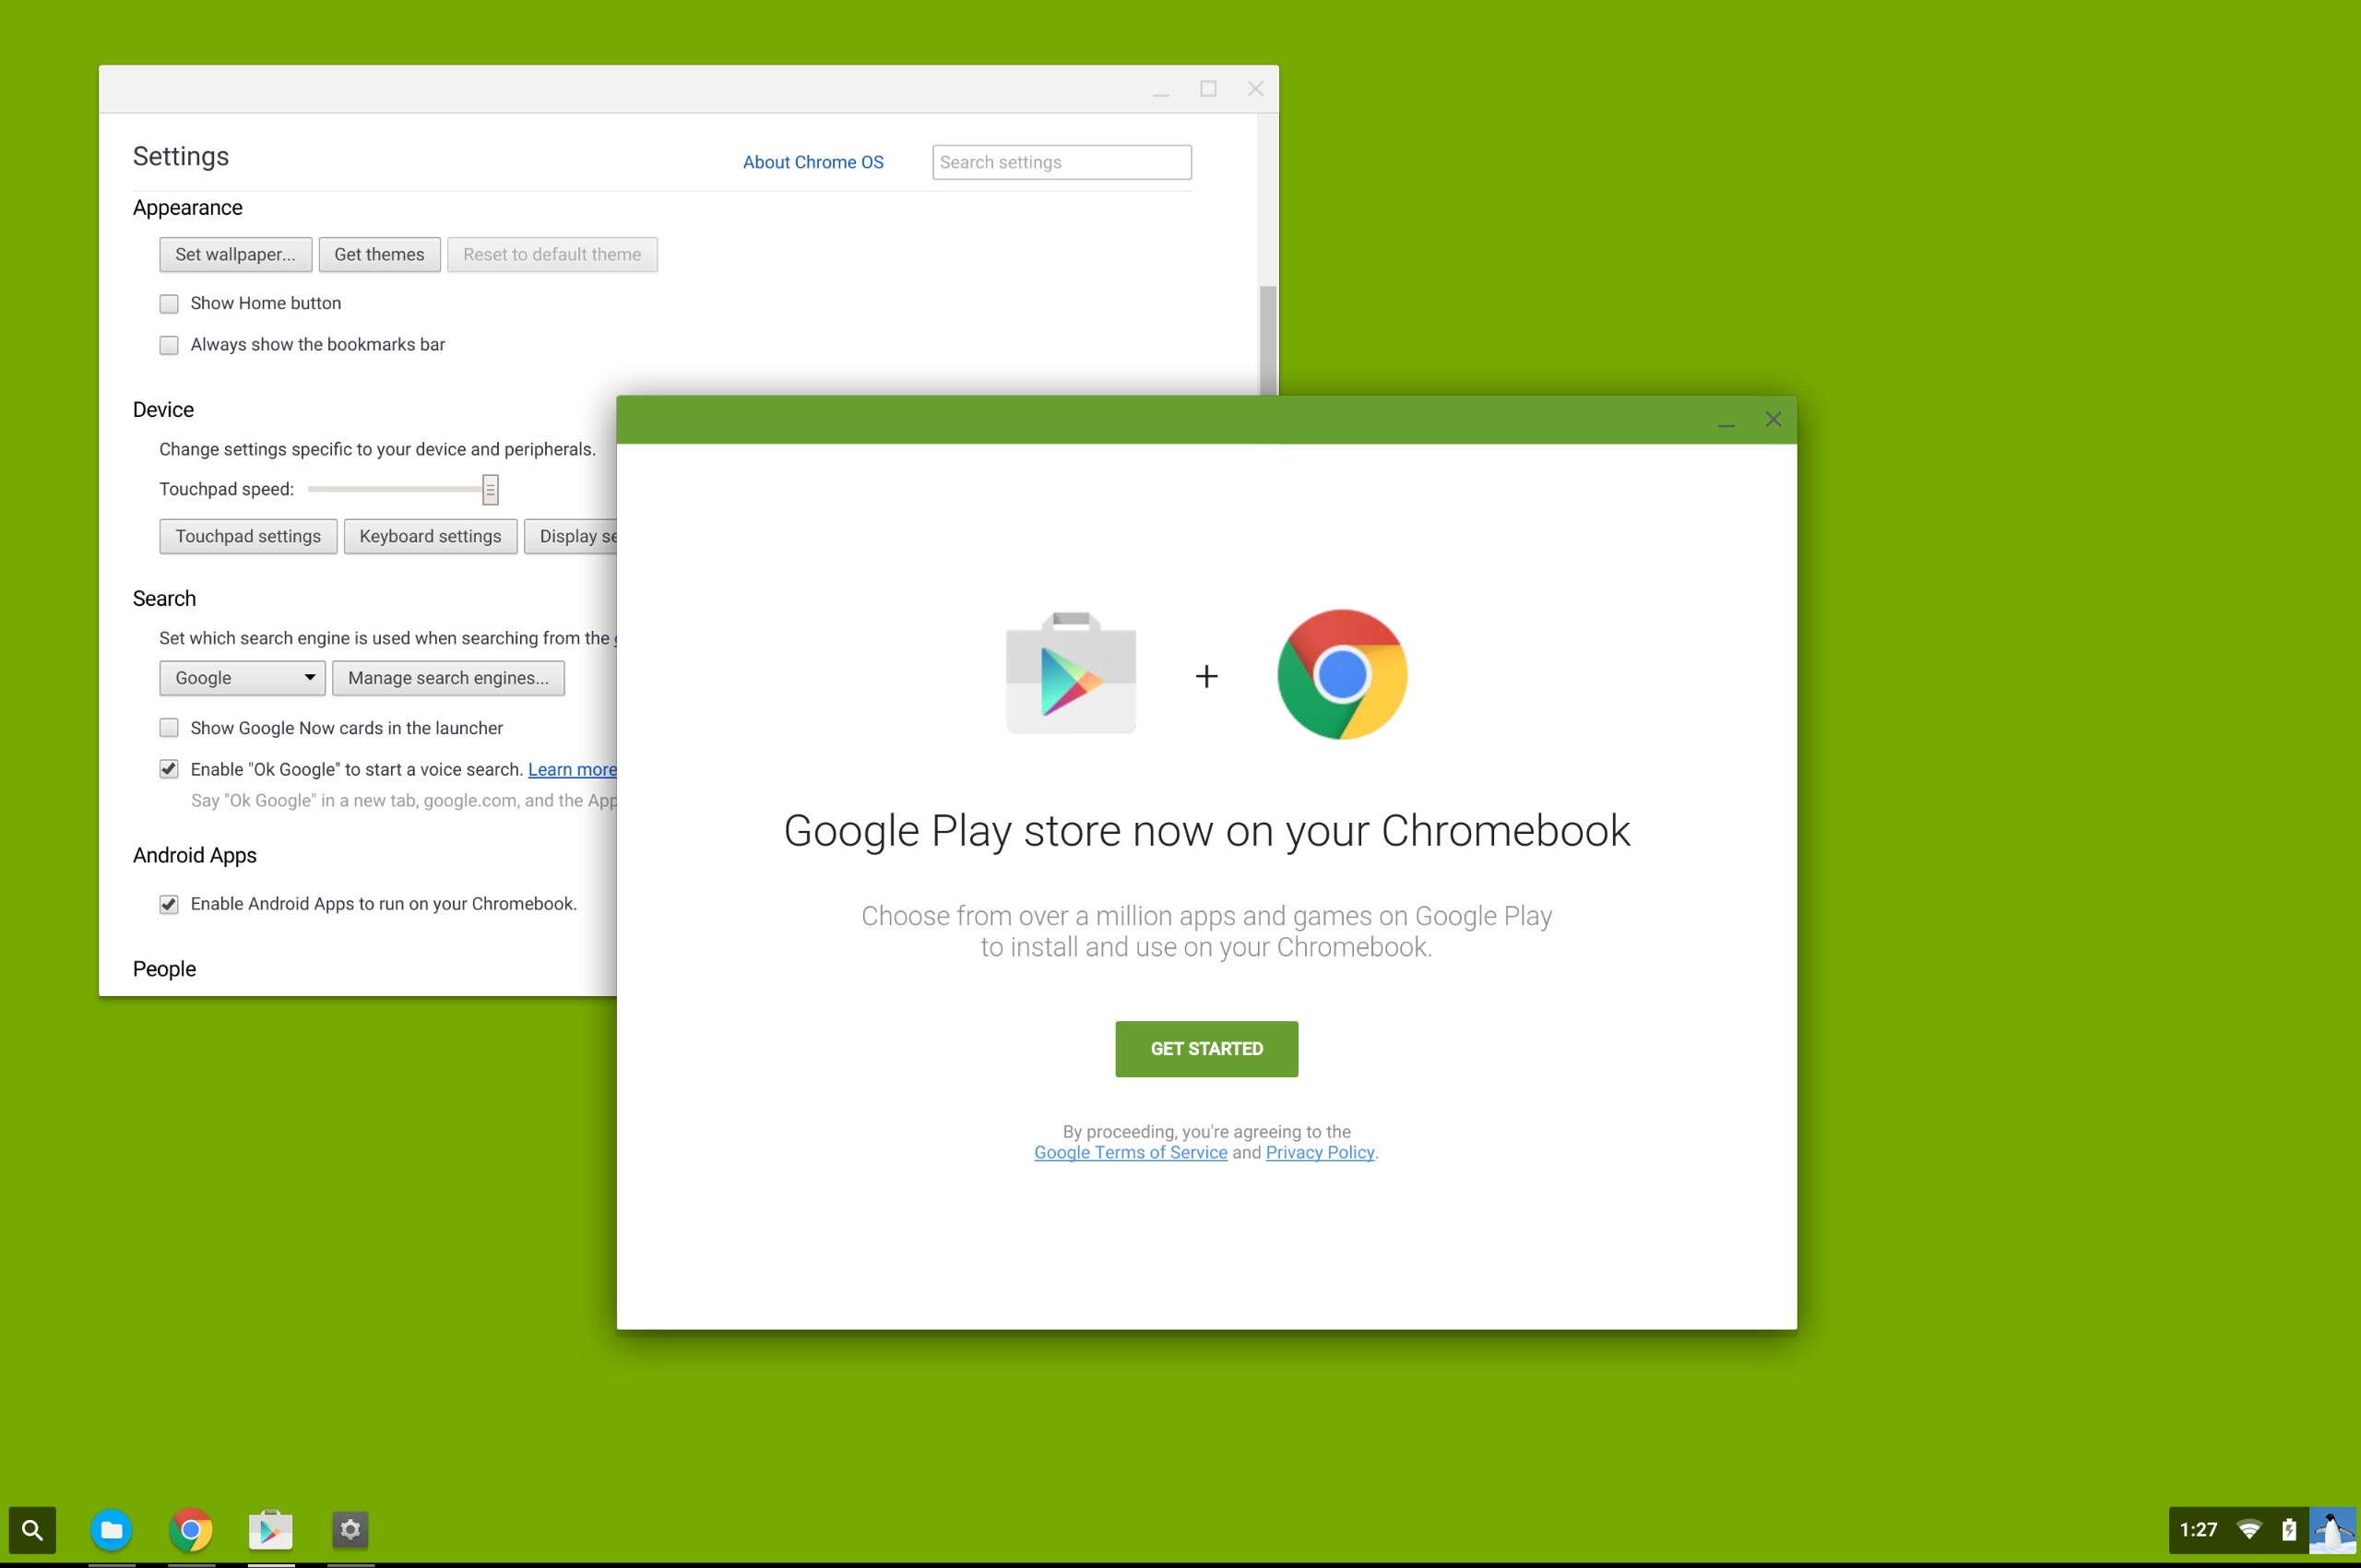 Screenshots show Google Play store coming soon to Chrome OS | Mobile